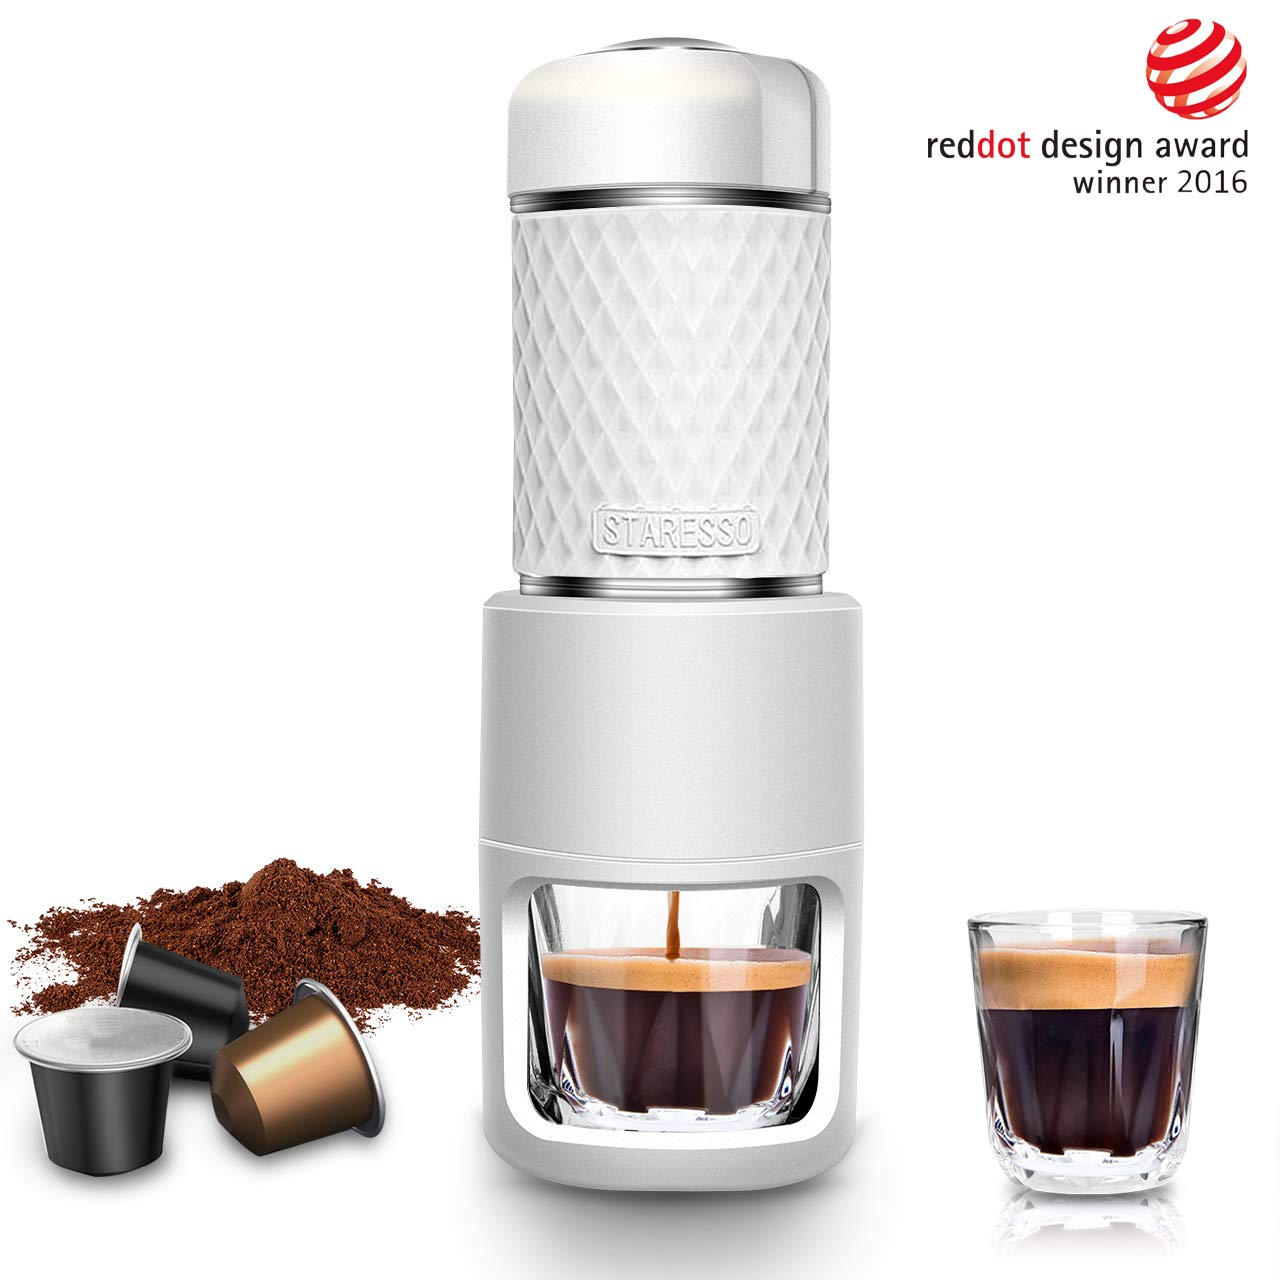 STARESSO Portable Espresso Maker, Mini Espresso Machine with BPA-Free Material for Rich & Thick Crema Manual Espresso, Compatible with Nespresso Pods & Ground Coffee, Compact Travel Coffee Maker